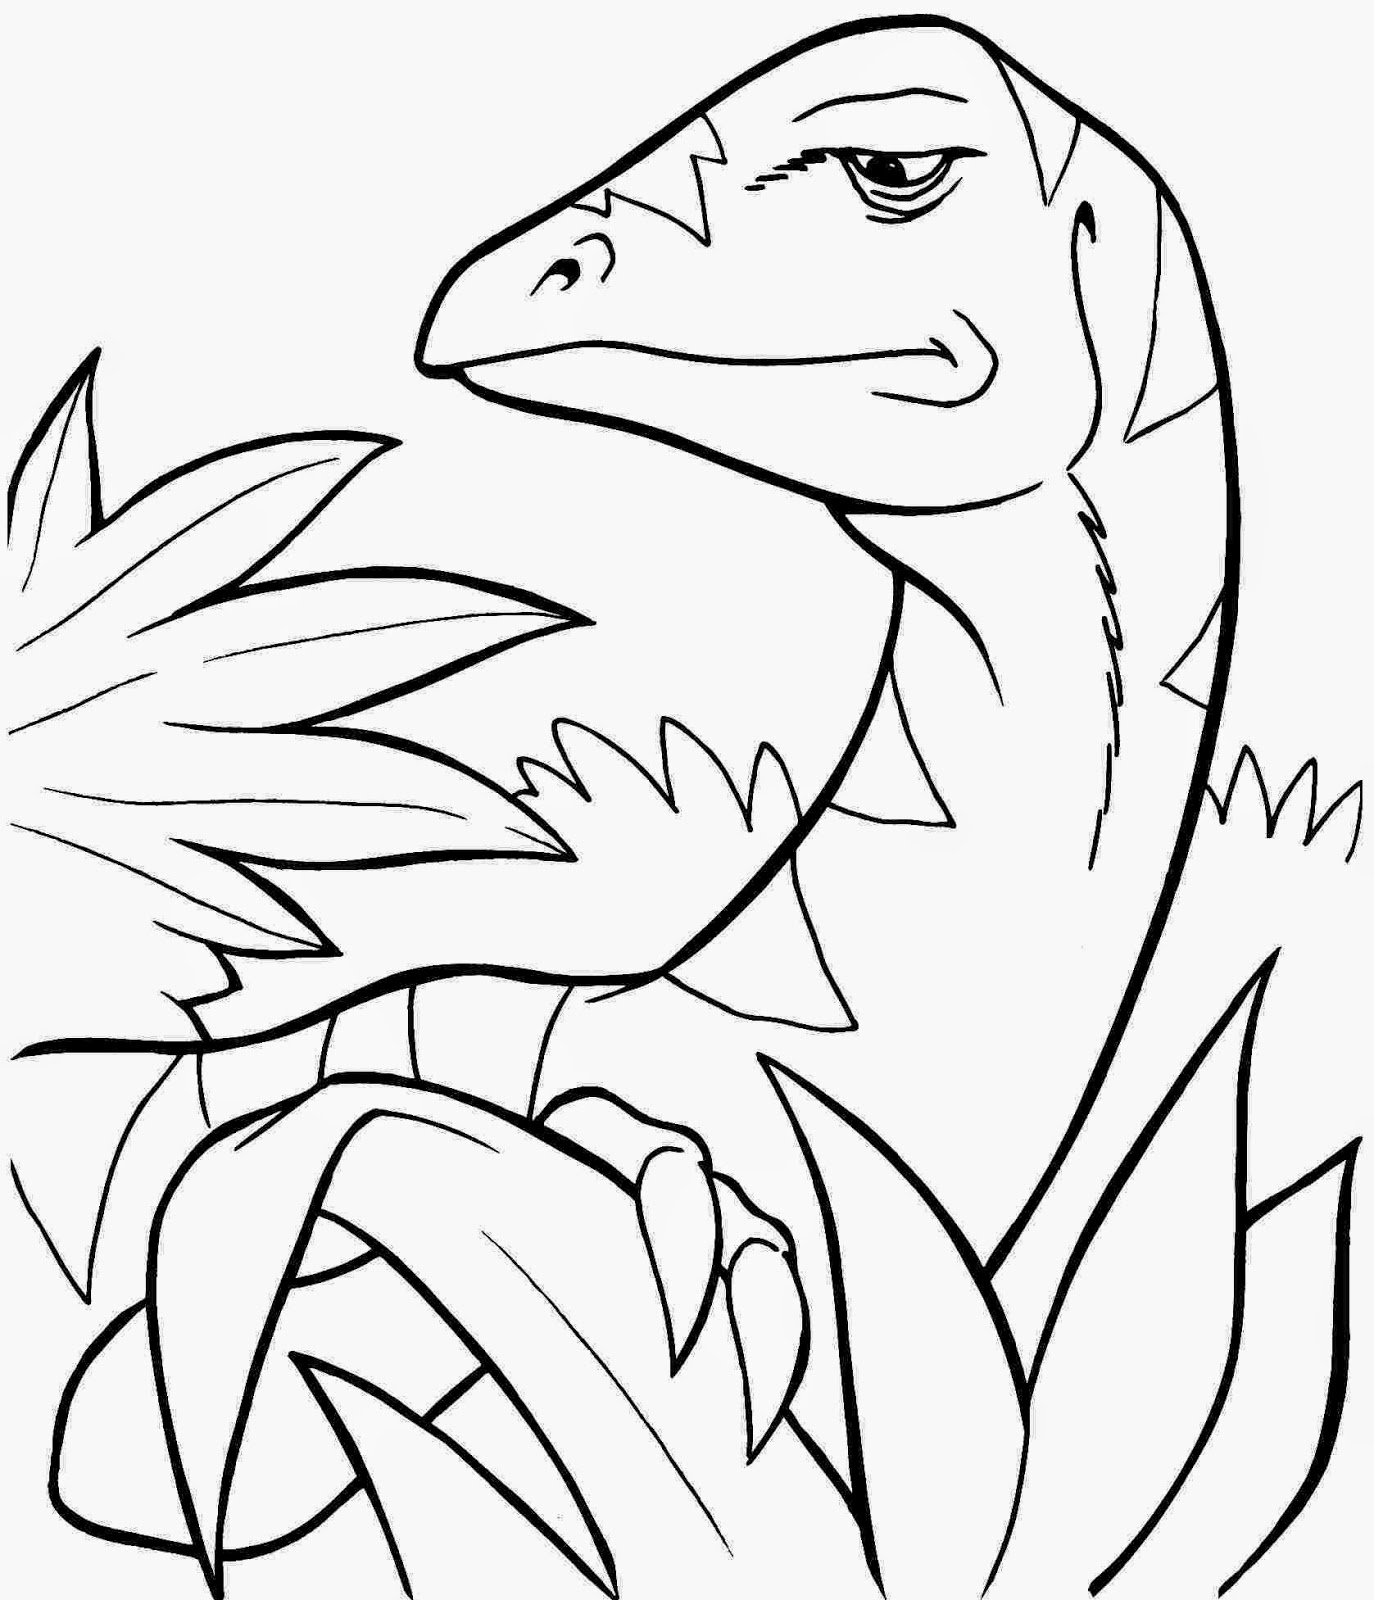 free printable coloring pages of dinosaurs coloring pages dinosaur free printable coloring pages coloring dinosaurs free printable pages of